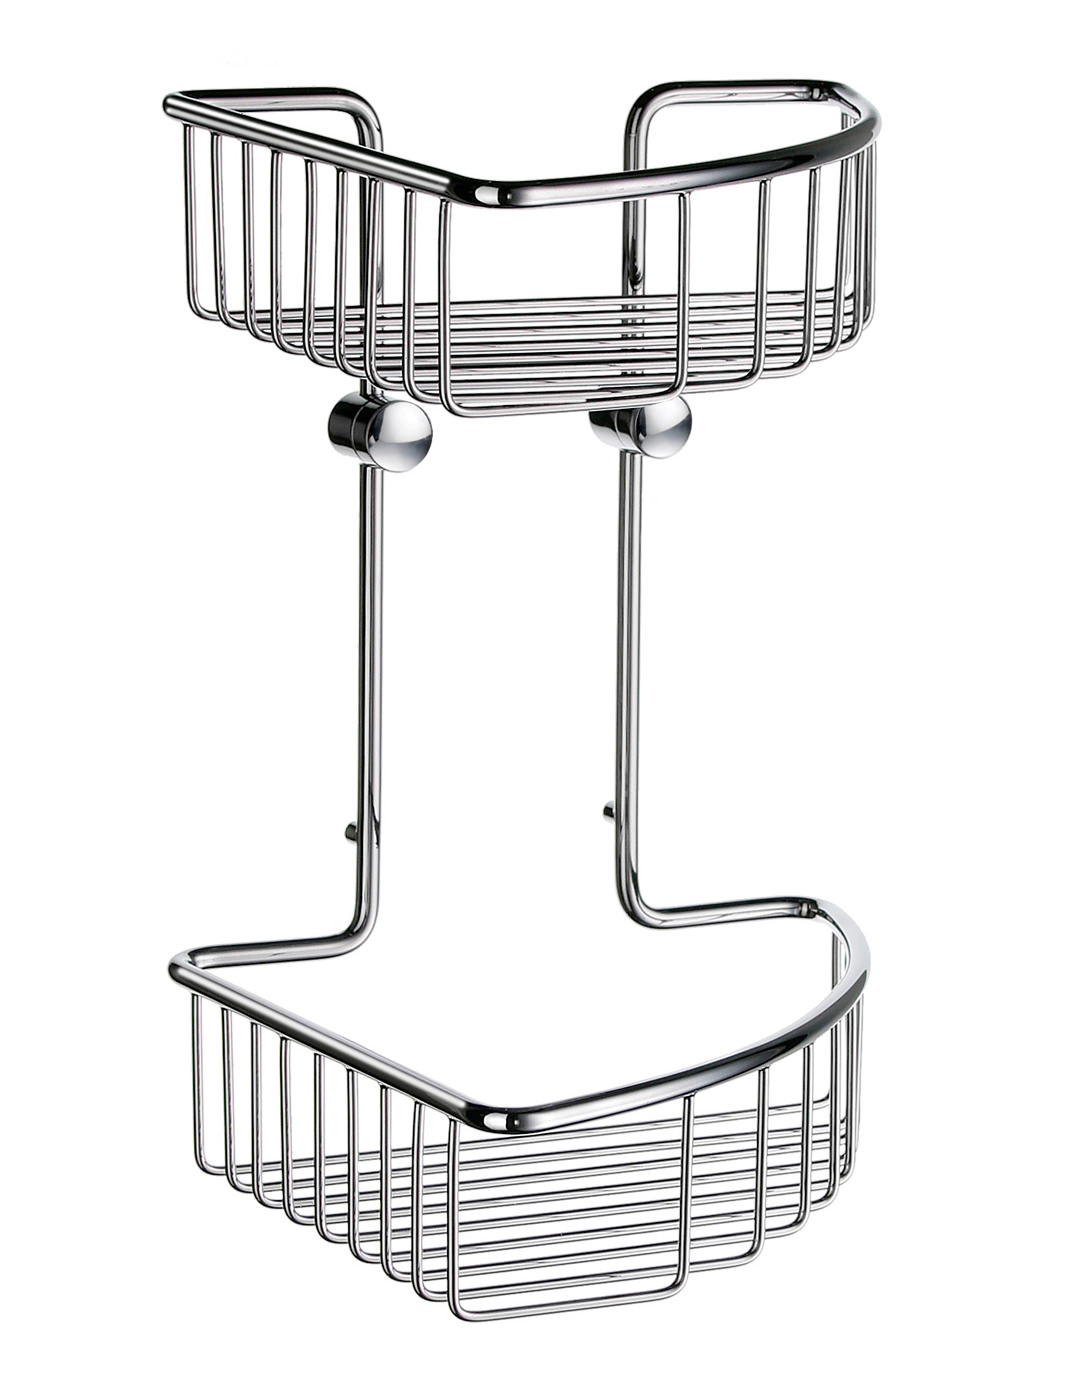 Smedbo Sideline Soap Basket Corner 2 Level 207 X 207mm